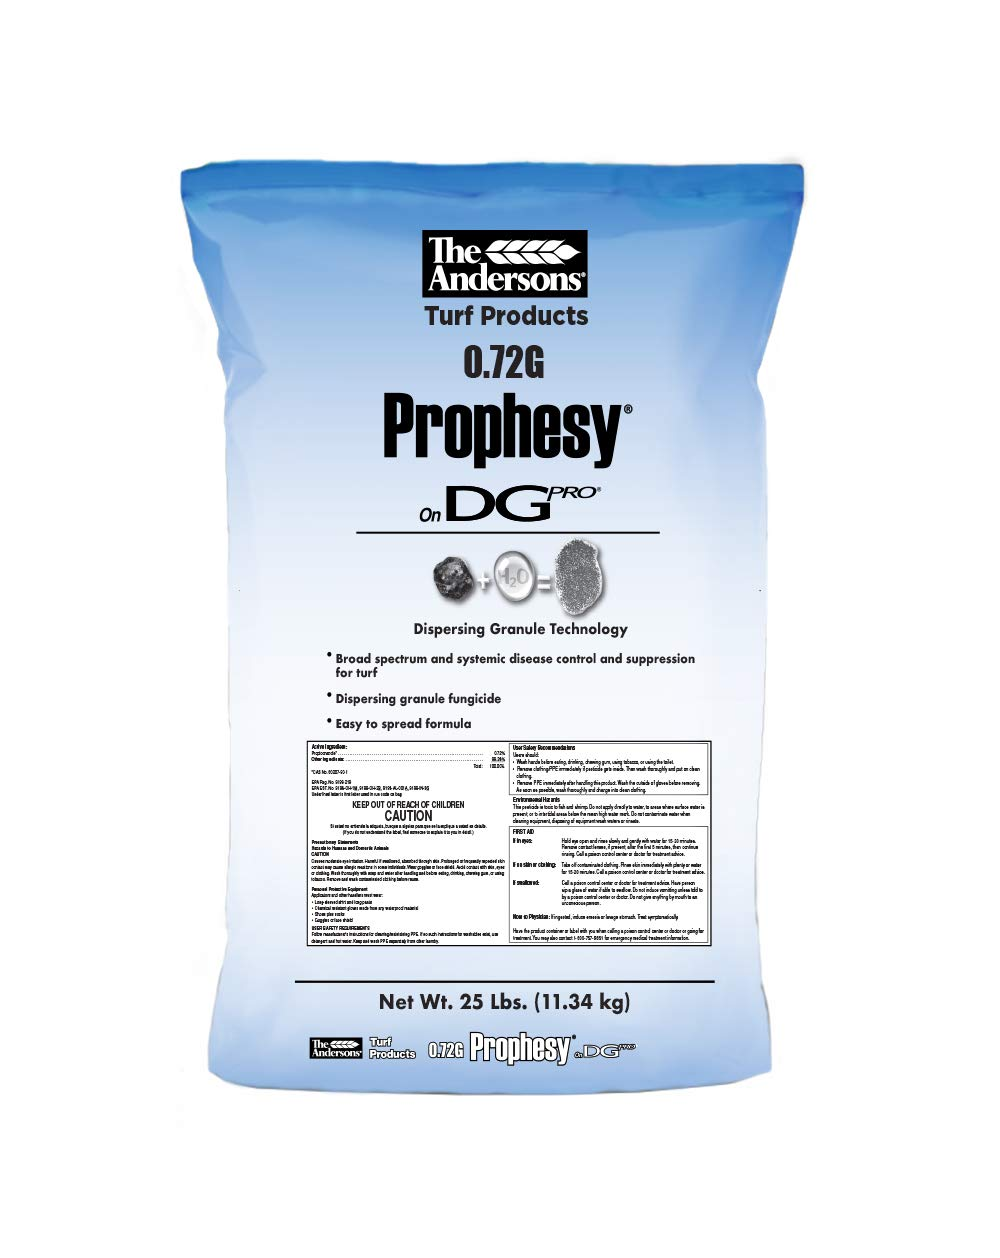 The Andersons Prophesy Propiconazole Broad Spectrum Fungicide on DG Pro, 25lbs (up to 10,000 sq ft.)